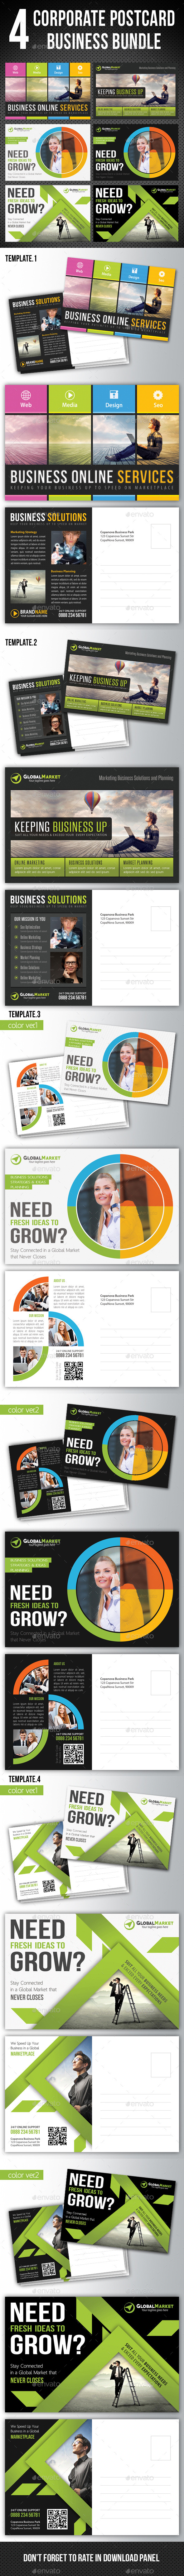 GraphicRiver 4 in 1 Corporate Business Postcard Bundle V01 10337264